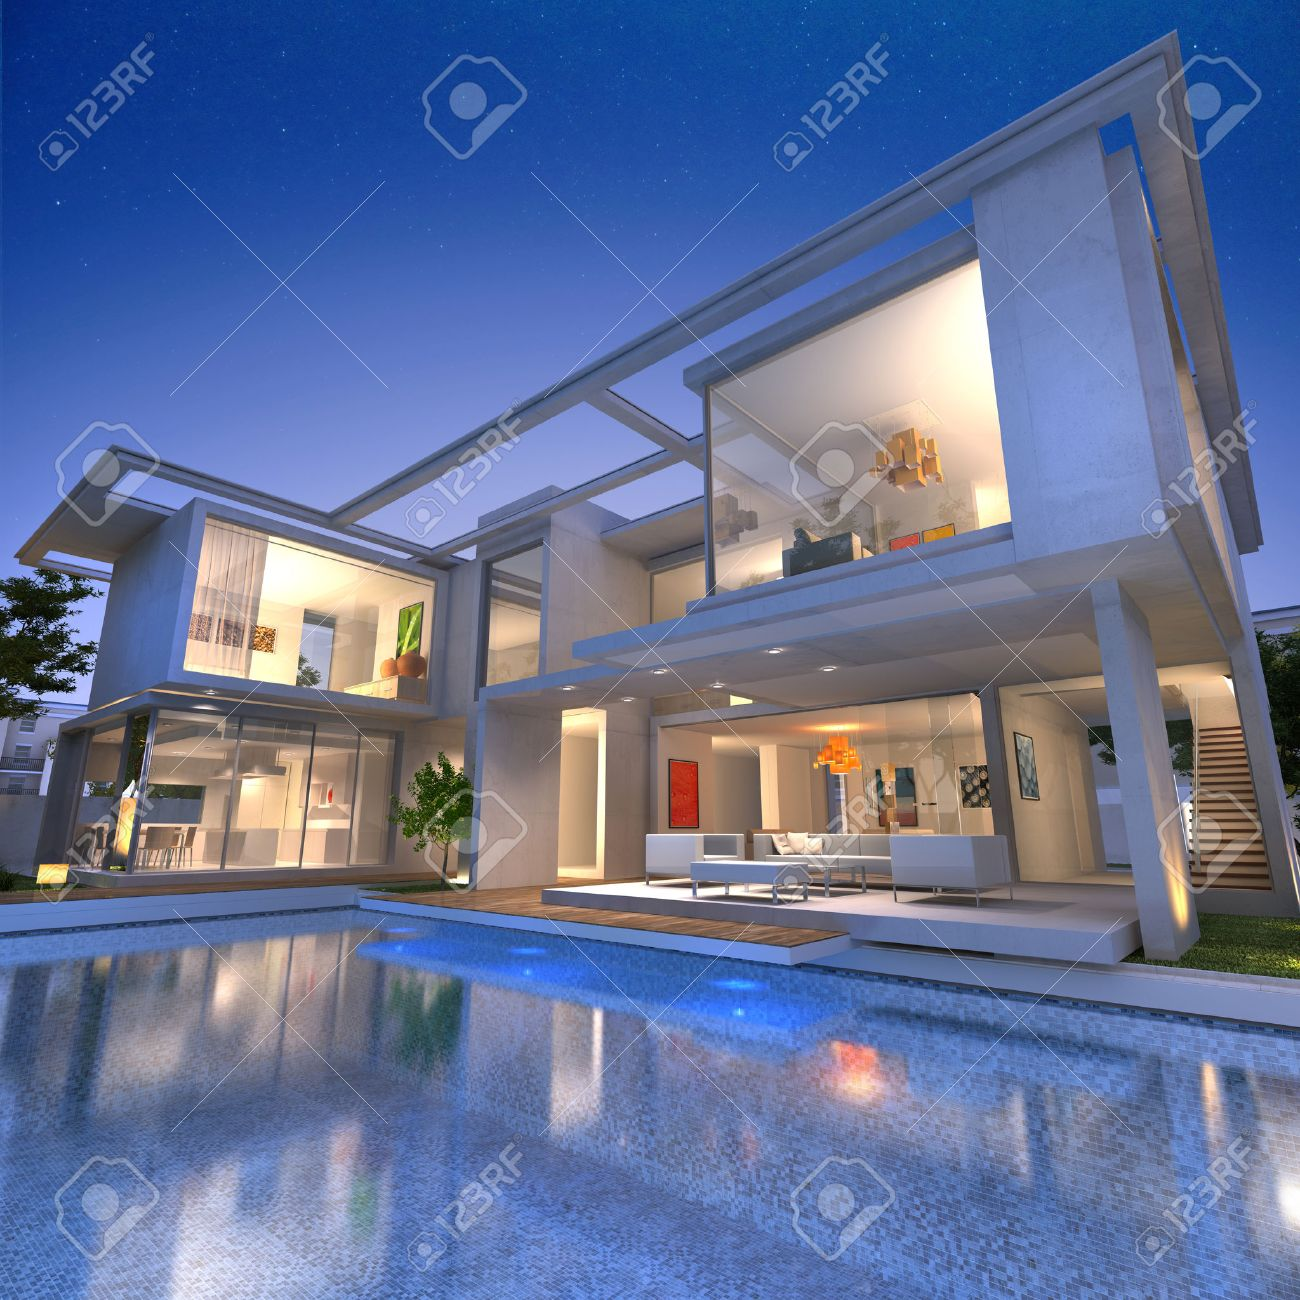 external view of a contemporary house with pool at dusk stock external view of a contemporary house with pool at dusk stock photo 29641509